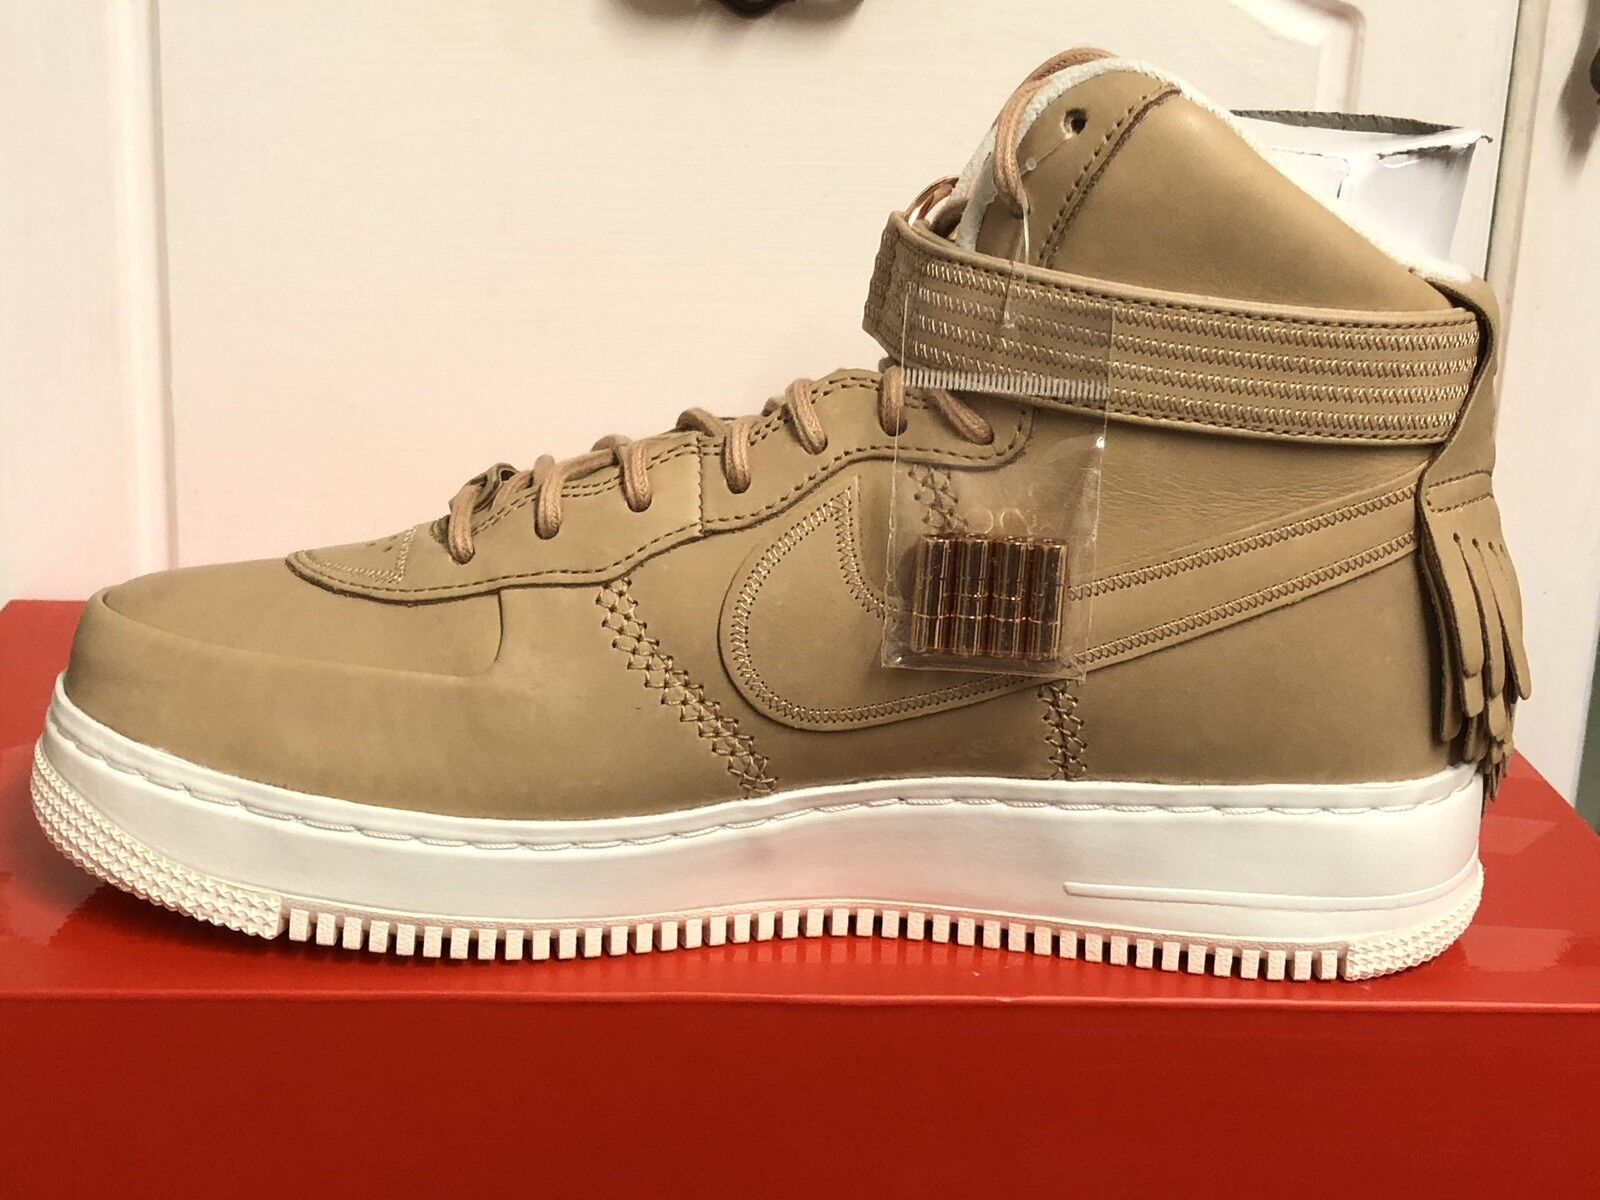 nike air force 1 chaussures high sl   formateurs chaussures 1 chaussures 10 4e0fd7